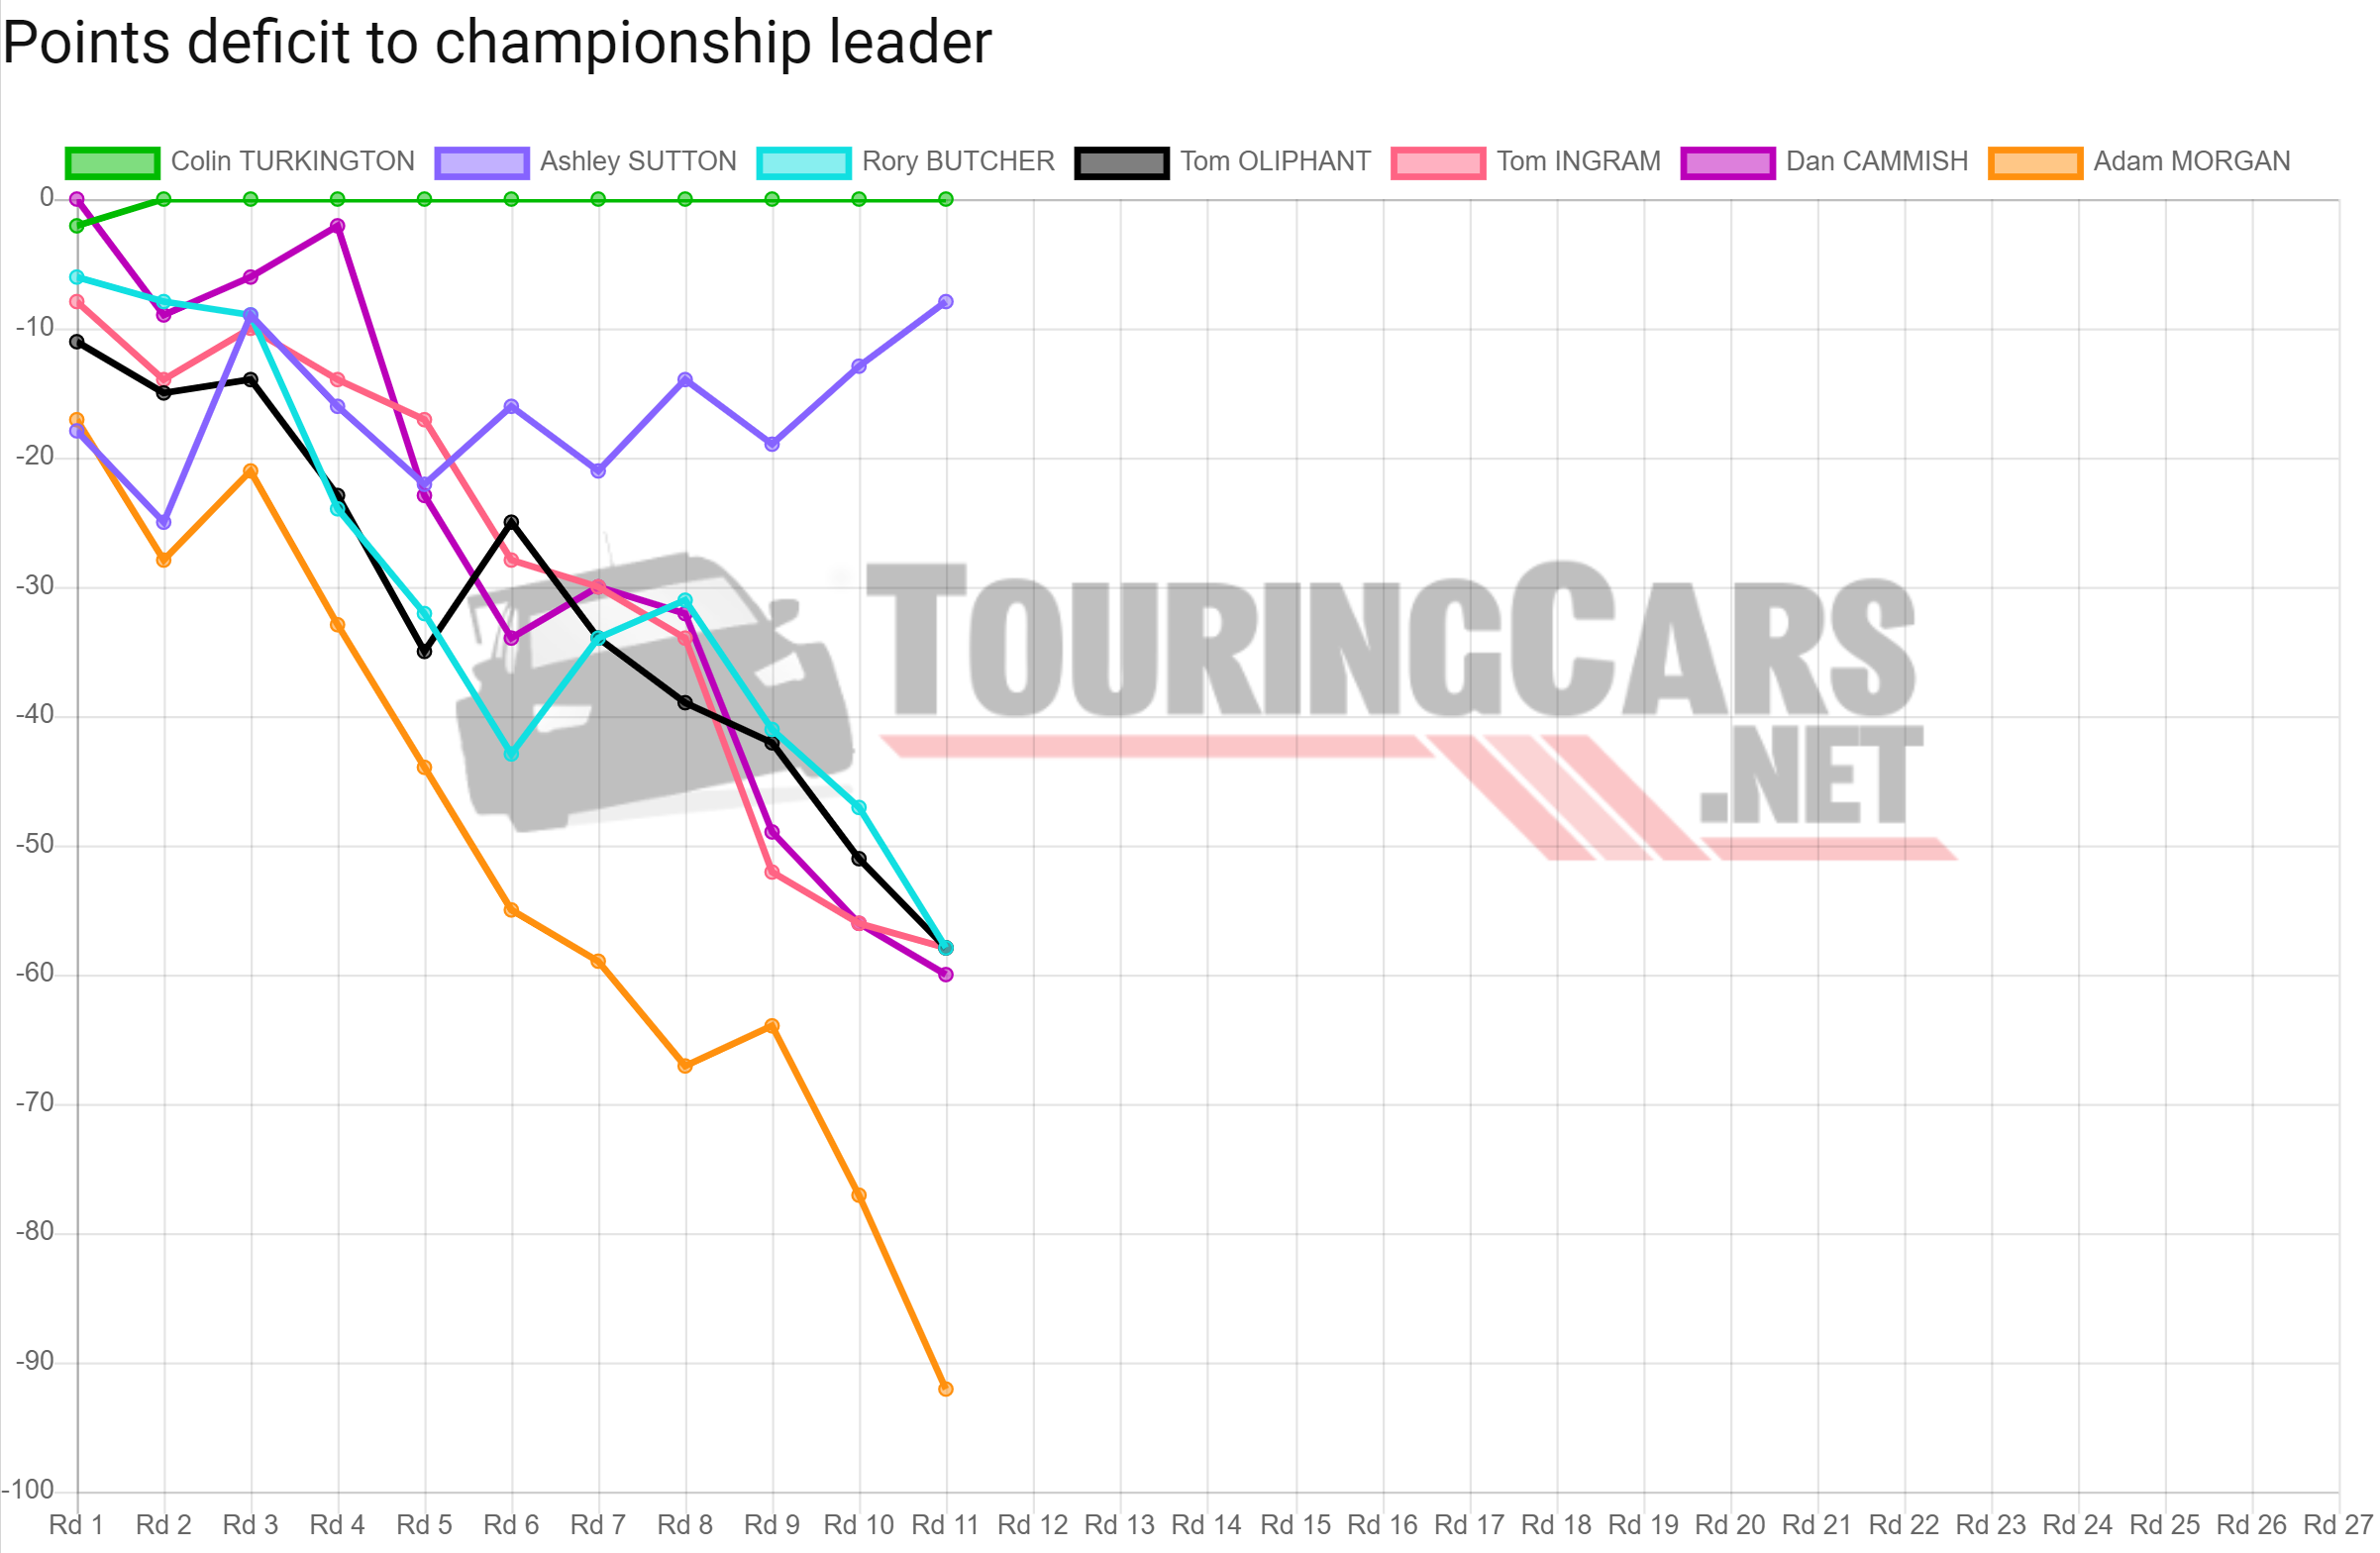 BTCC points deficit after Round 11